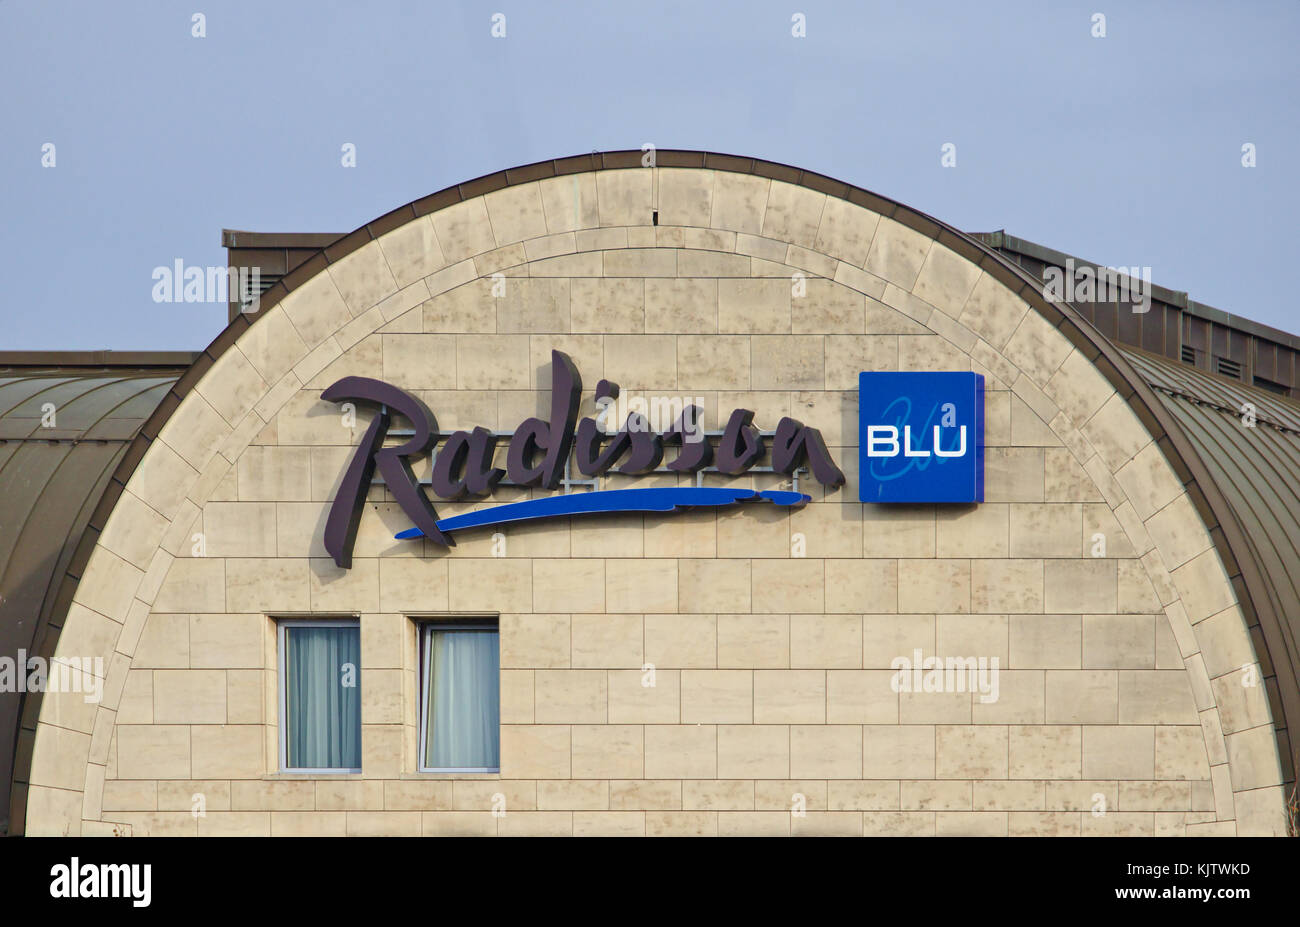 Bremen, Germany - November 23rd, 2017 - Gable of Radisson Blu hotel with large company logo - Stock Image